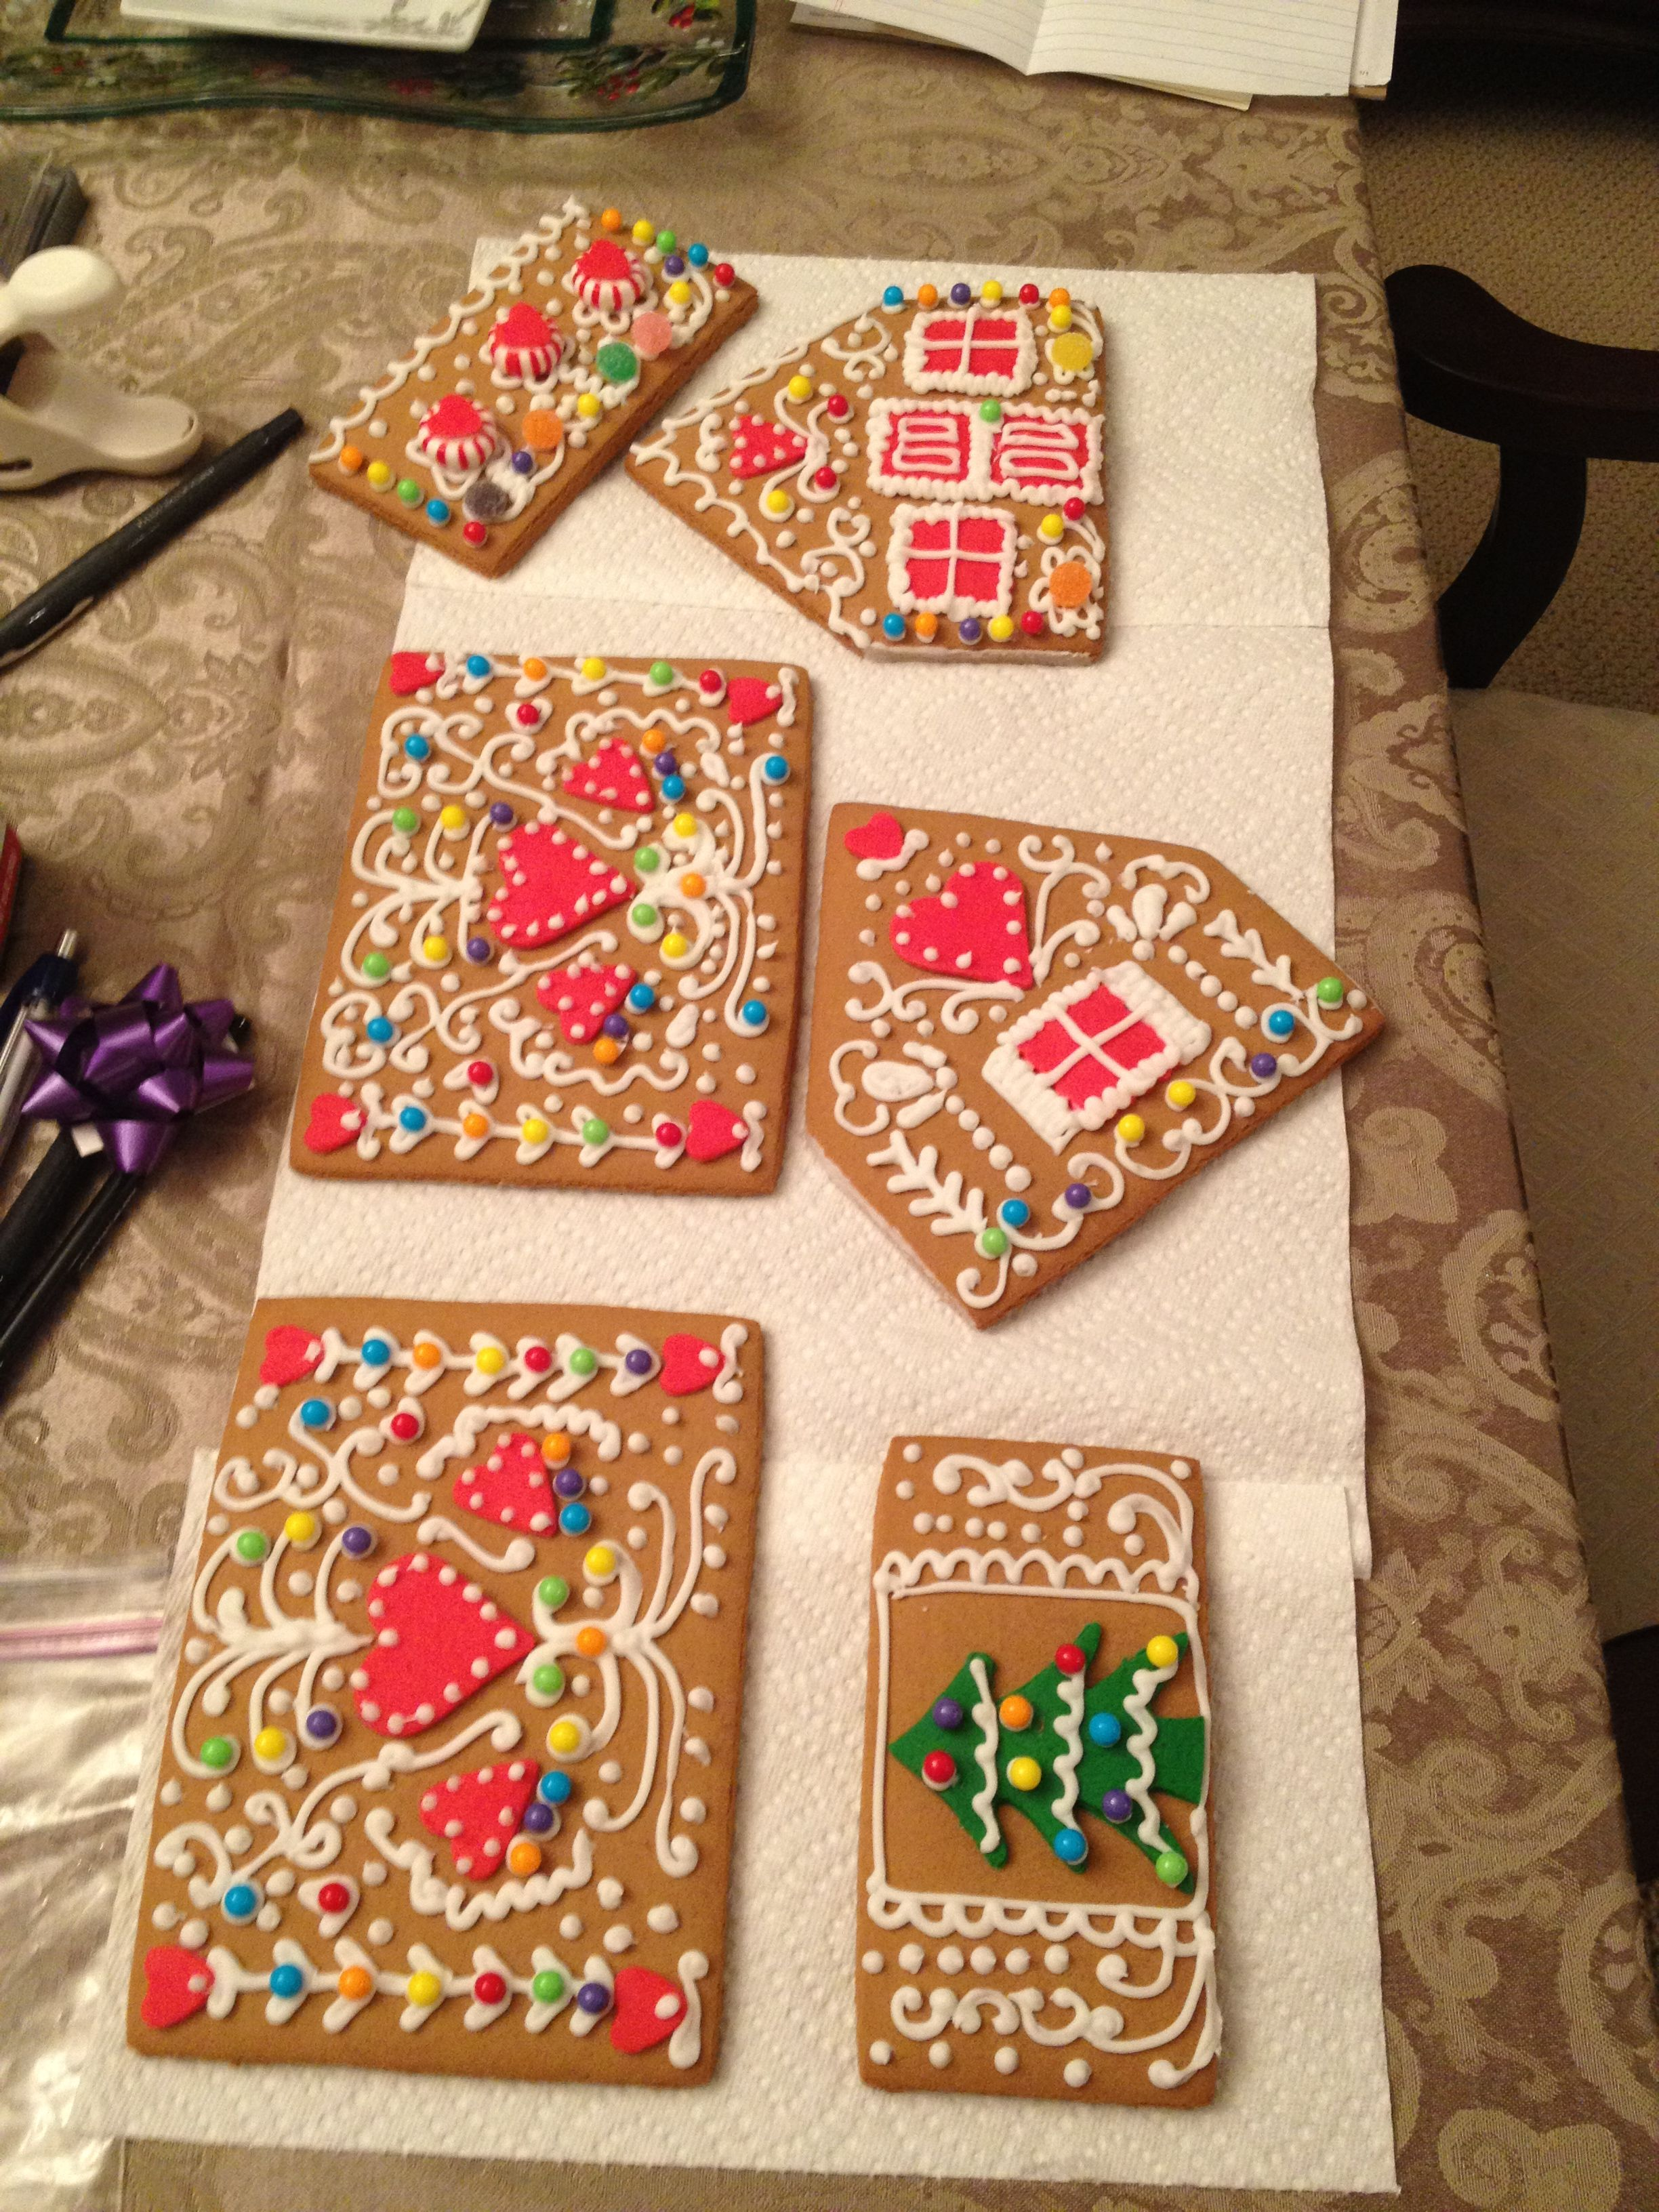 Decorate gingerbread house sides before assembling! & Gingerbread House Design Ideas | Gingerbread Decorating and House